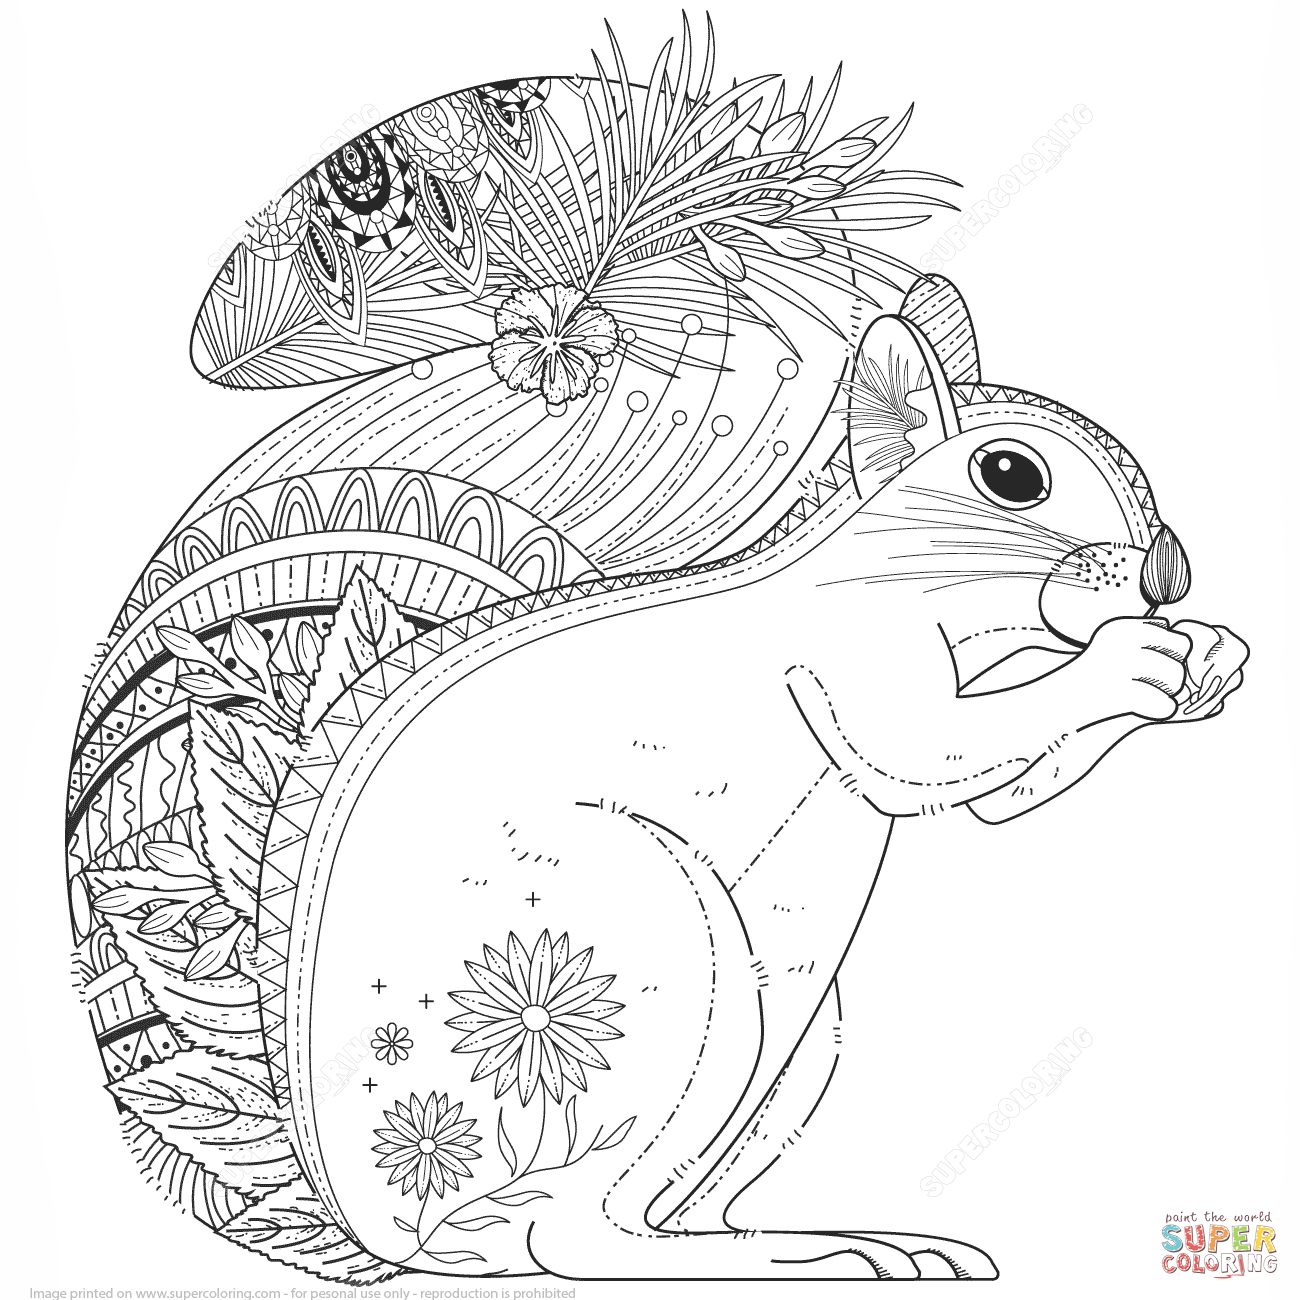 1300x1300 Squirrel Zentangle Coloring Page From Zentangle Category Select